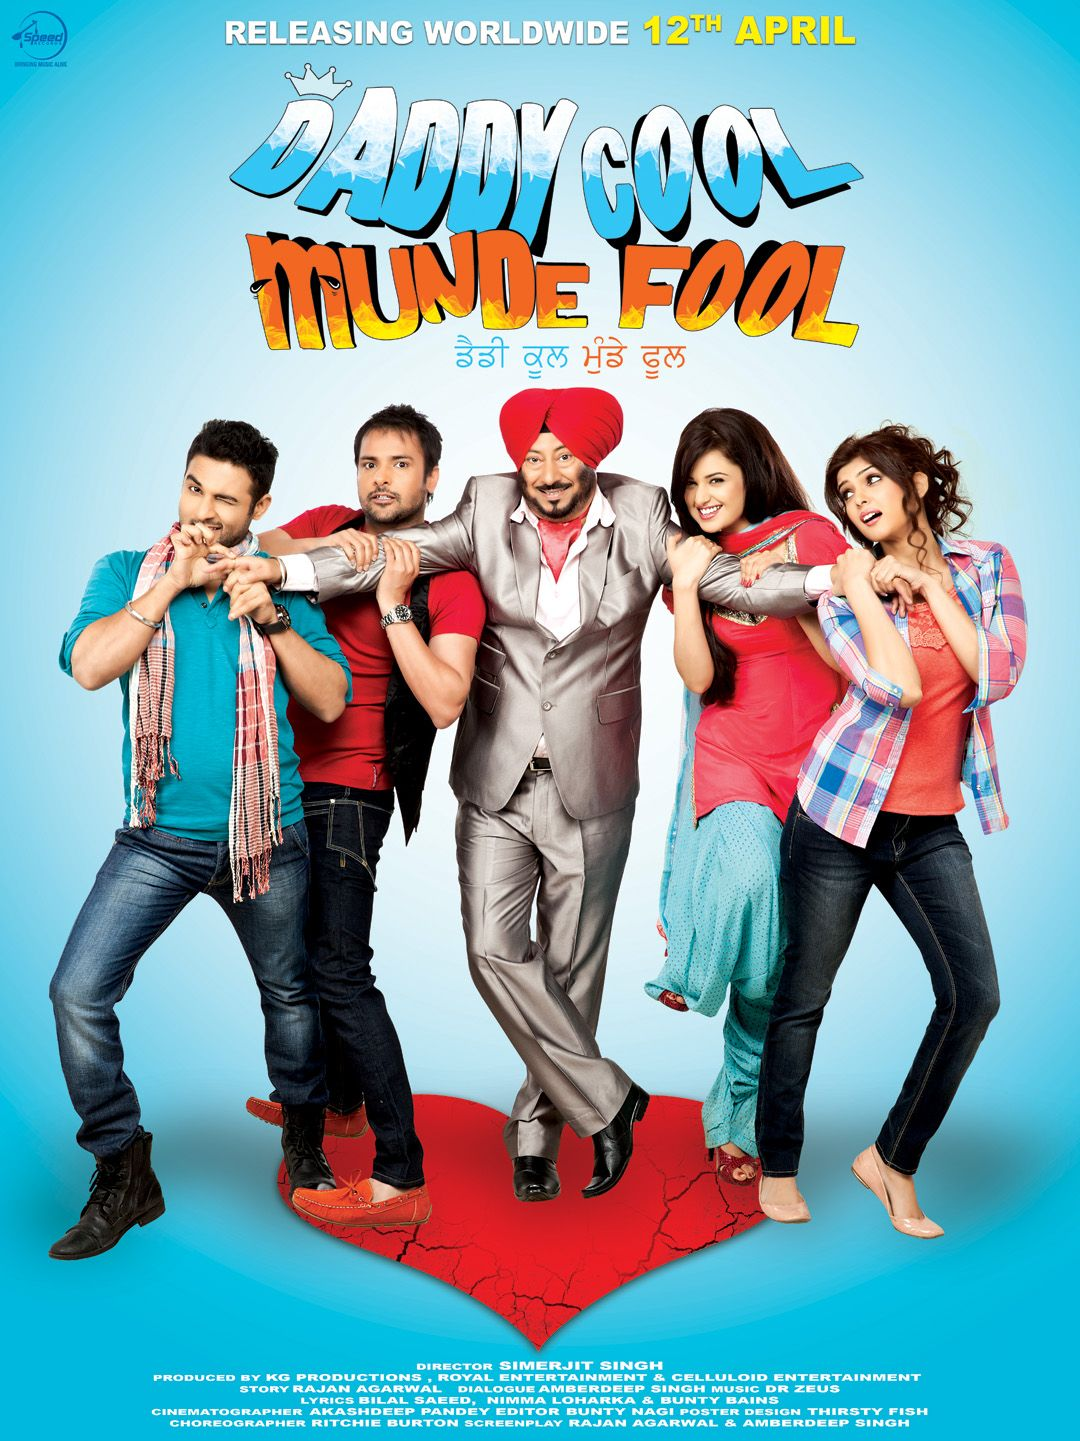 daddy cool munde fool I like their songs and its a funny